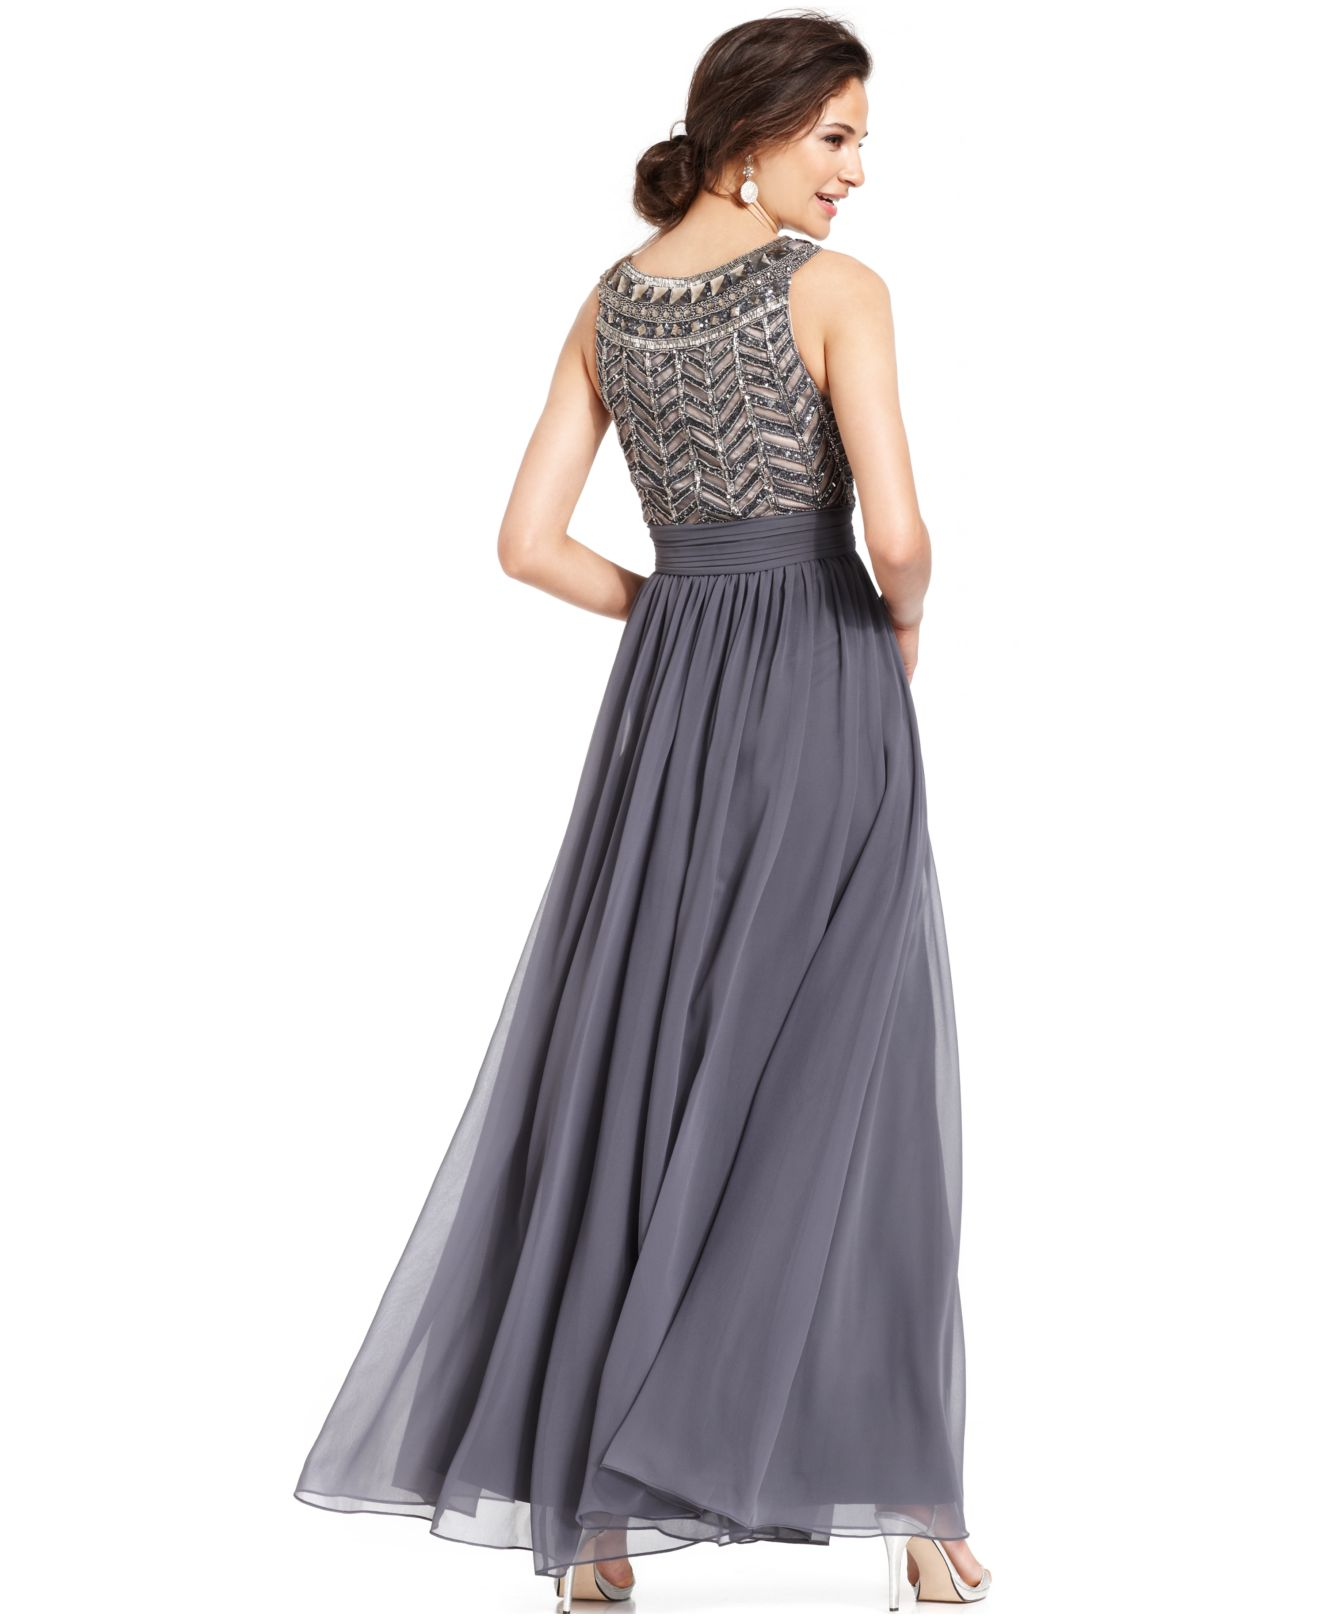 287767654d Lyst - JS Collections Sleeveless Beaded Empire Waist Gown in Gray